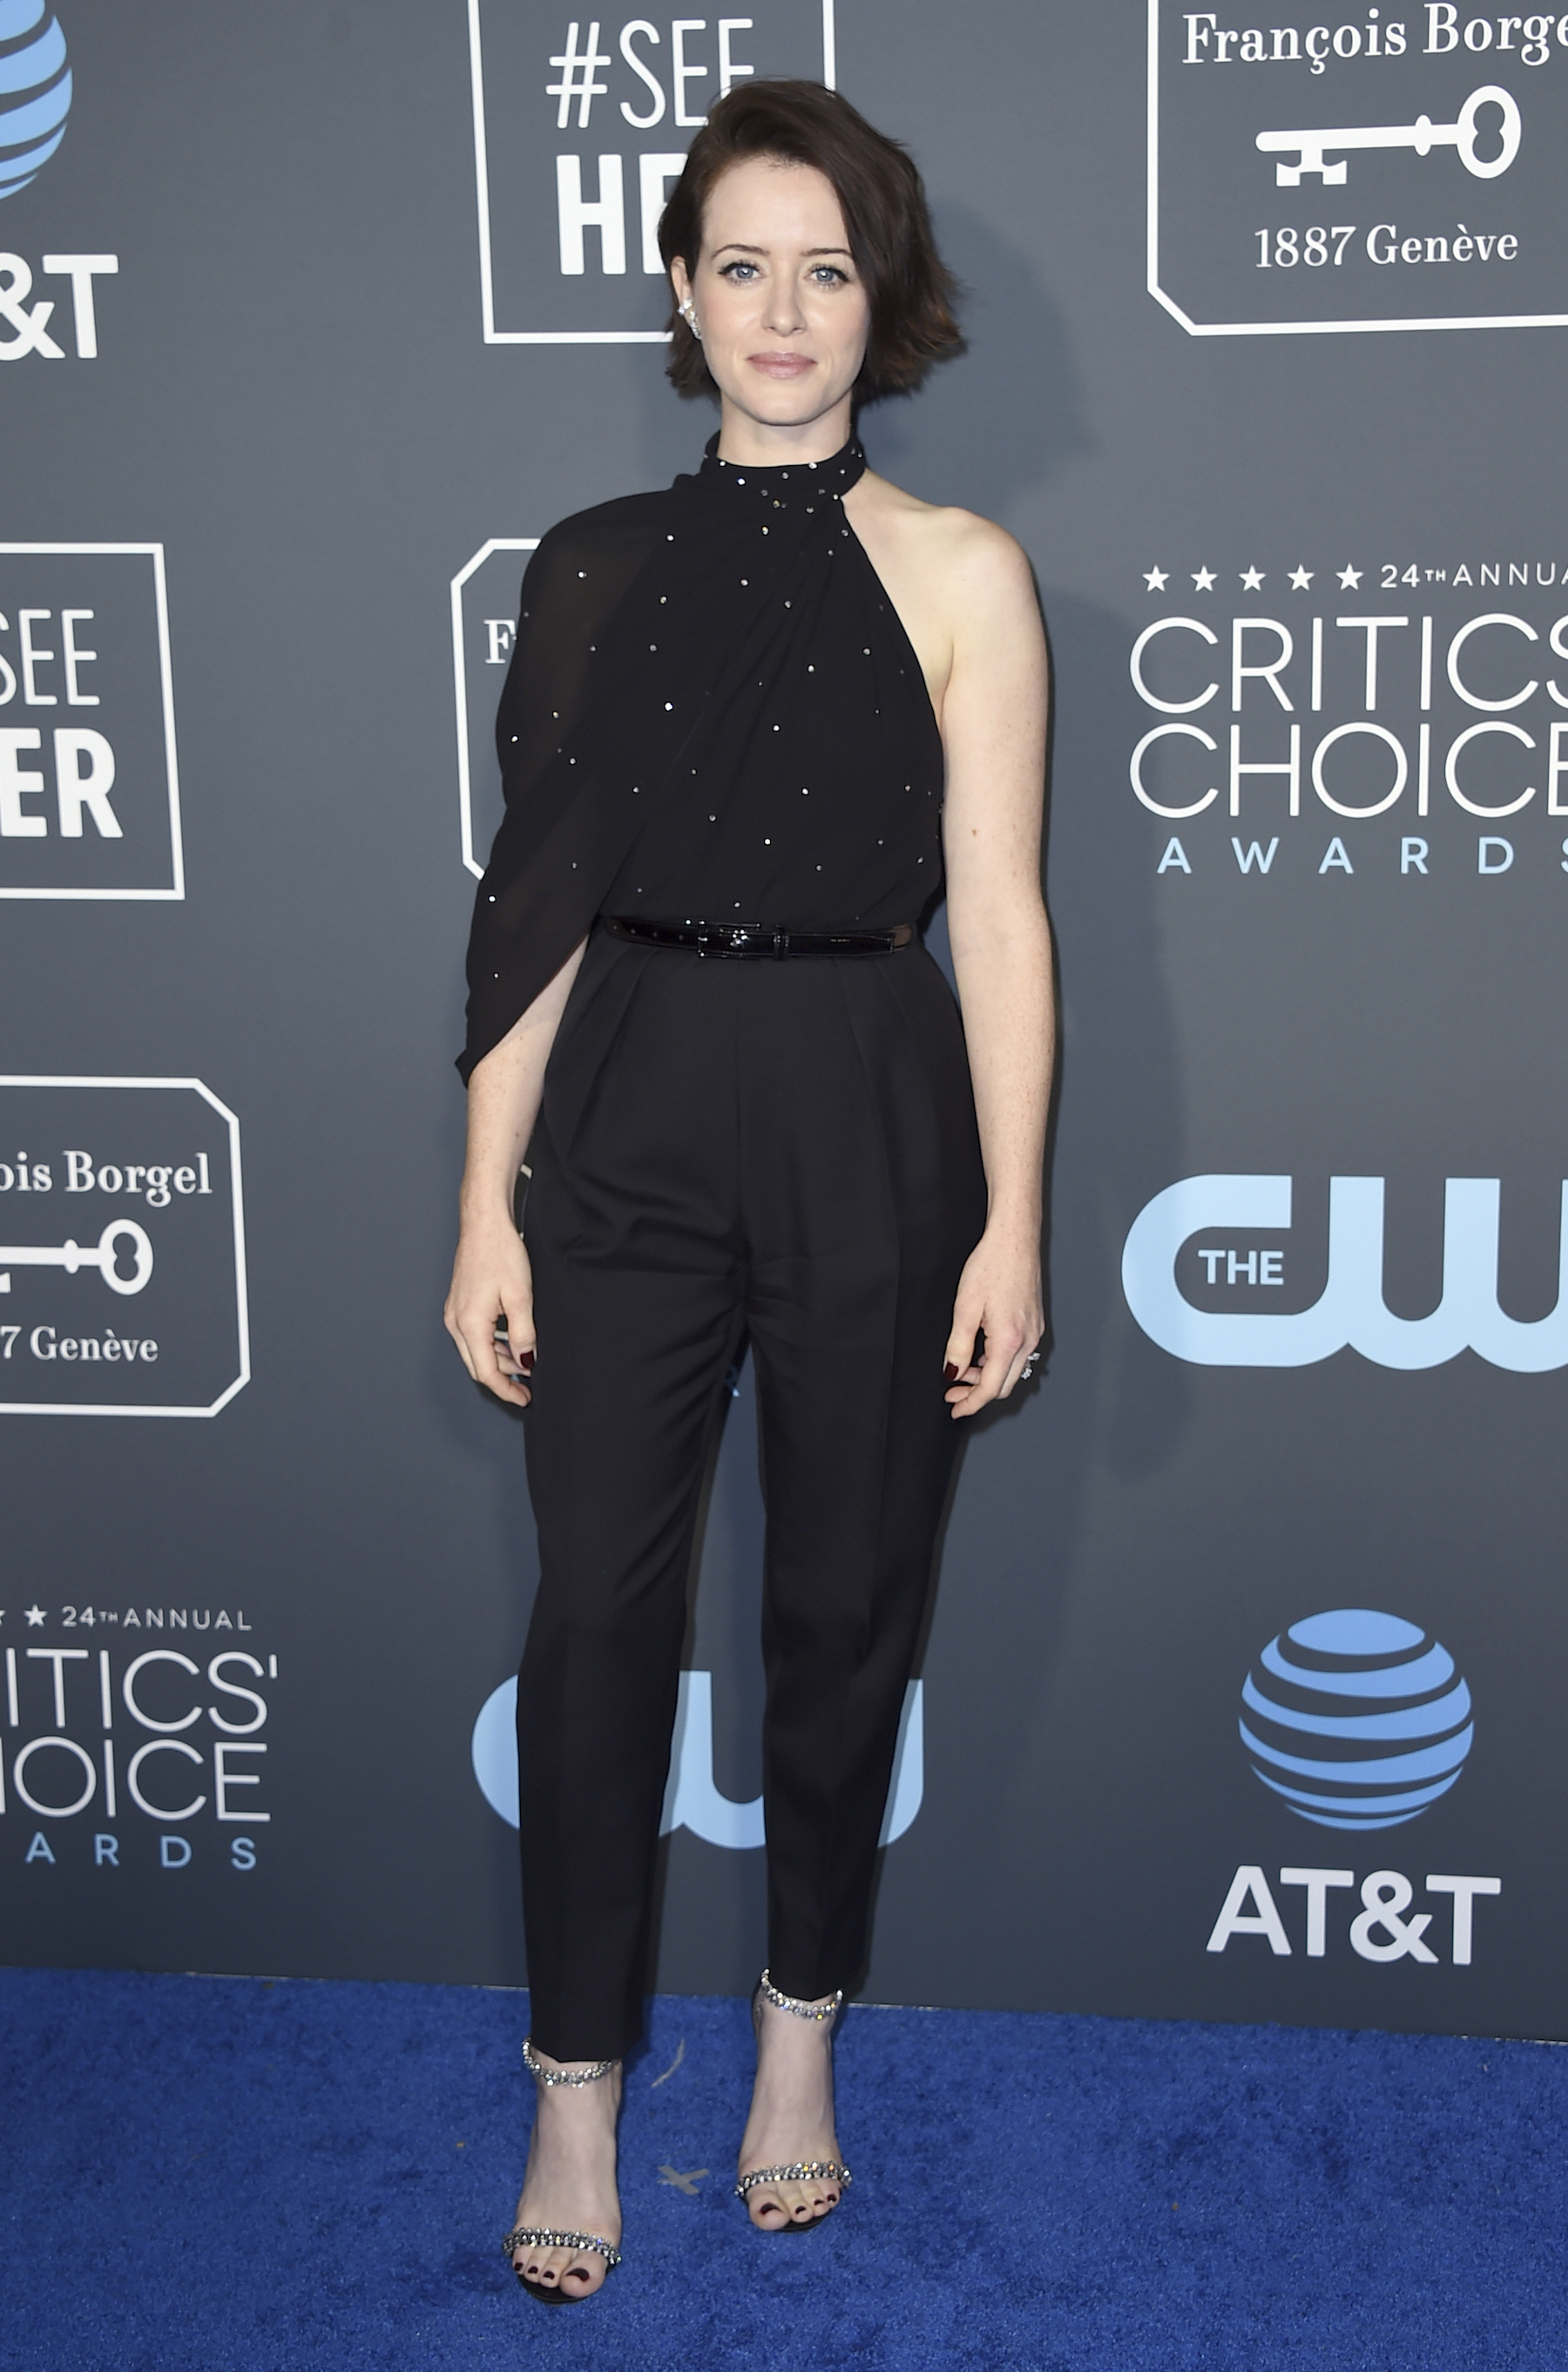 "<div class=""meta image-caption""><div class=""origin-logo origin-image ap""><span>AP</span></div><span class=""caption-text"">Claire Foy arrives at the 24th annual Critics' Choice Awards on Sunday, Jan. 13, 2019, at the Barker Hangar in Santa Monica, Calif. (Jordan Strauss/Invision/AP)</span></div>"